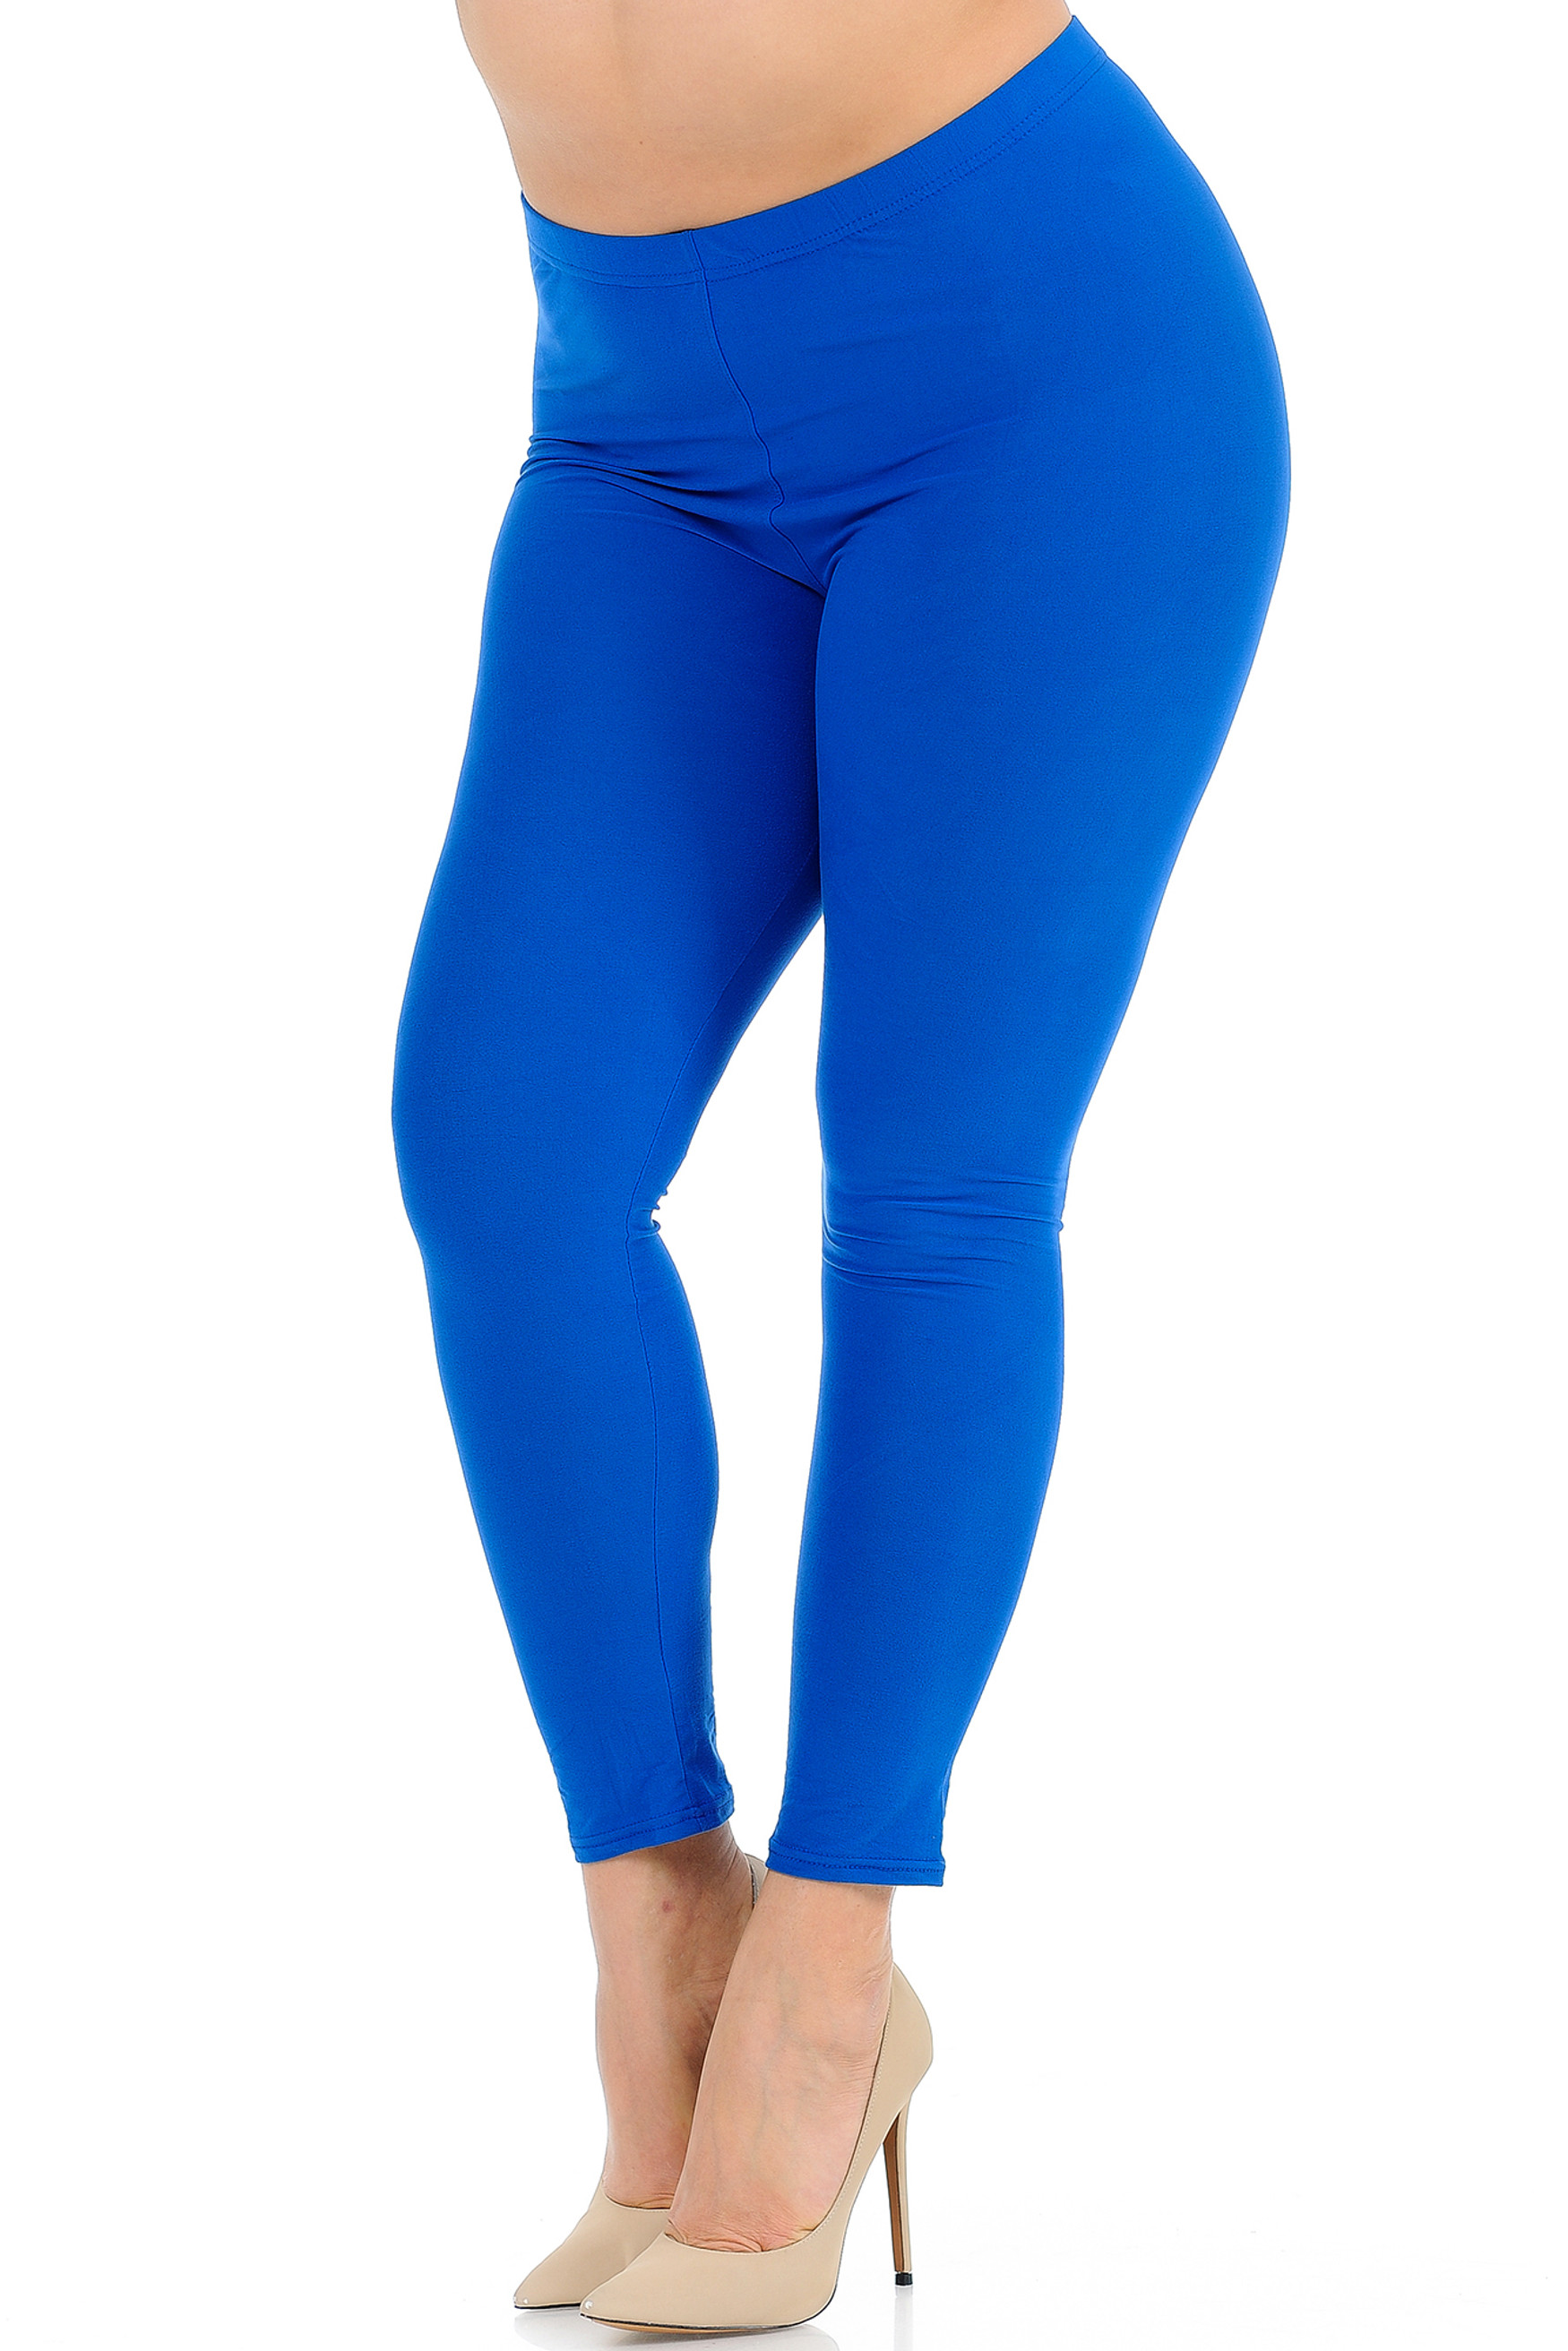 45 degree view of Blue Buttery Soft Basic Solid Extra Plus Size Leggings - 3X-5X - New Mix